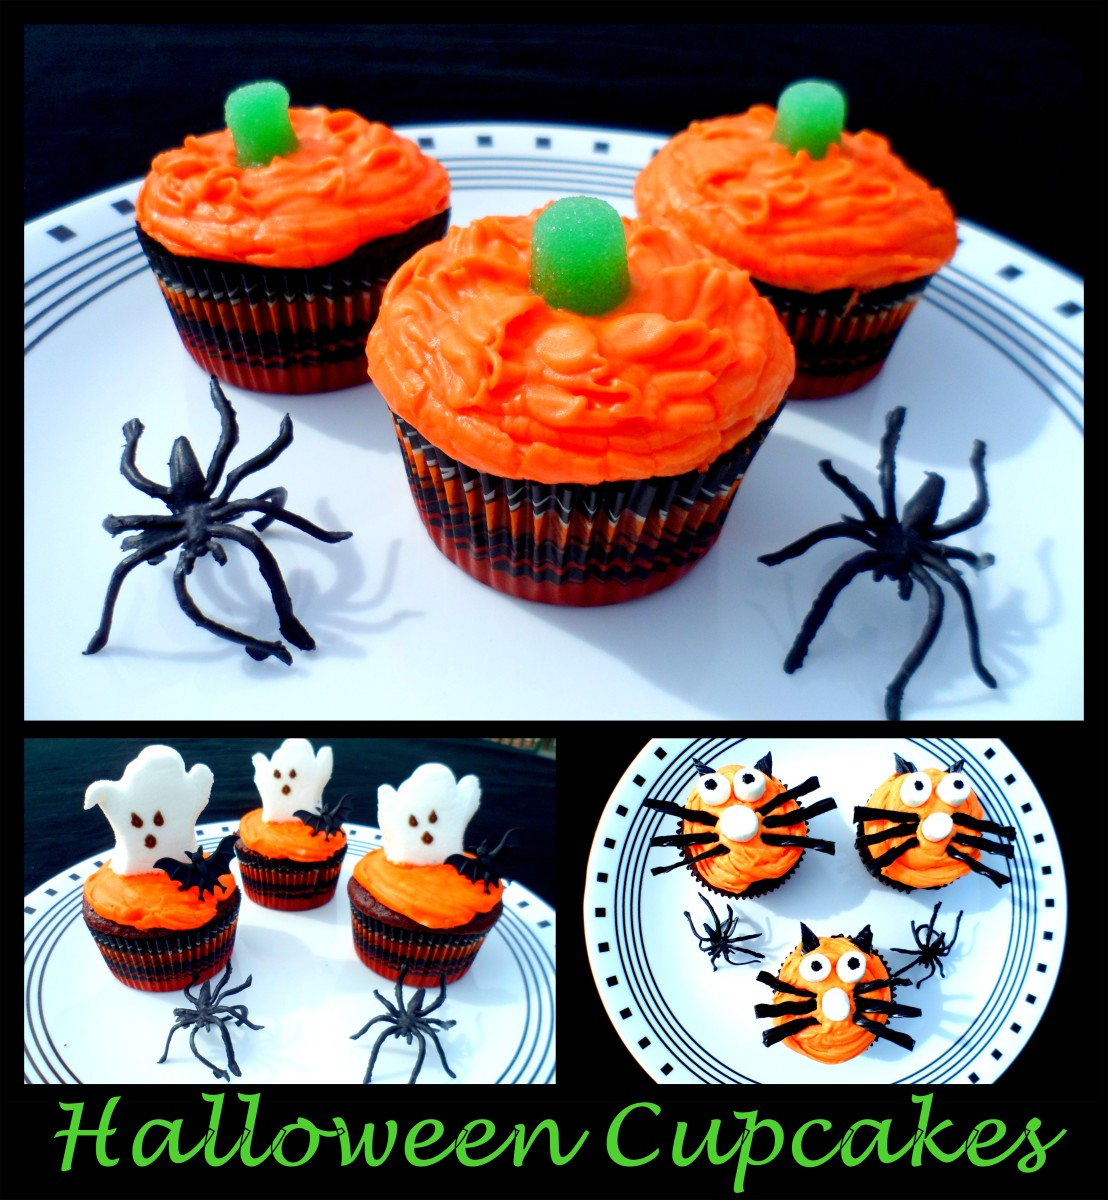 Halloween Cupcakes - Cupcake Decorating Ideas HubPages